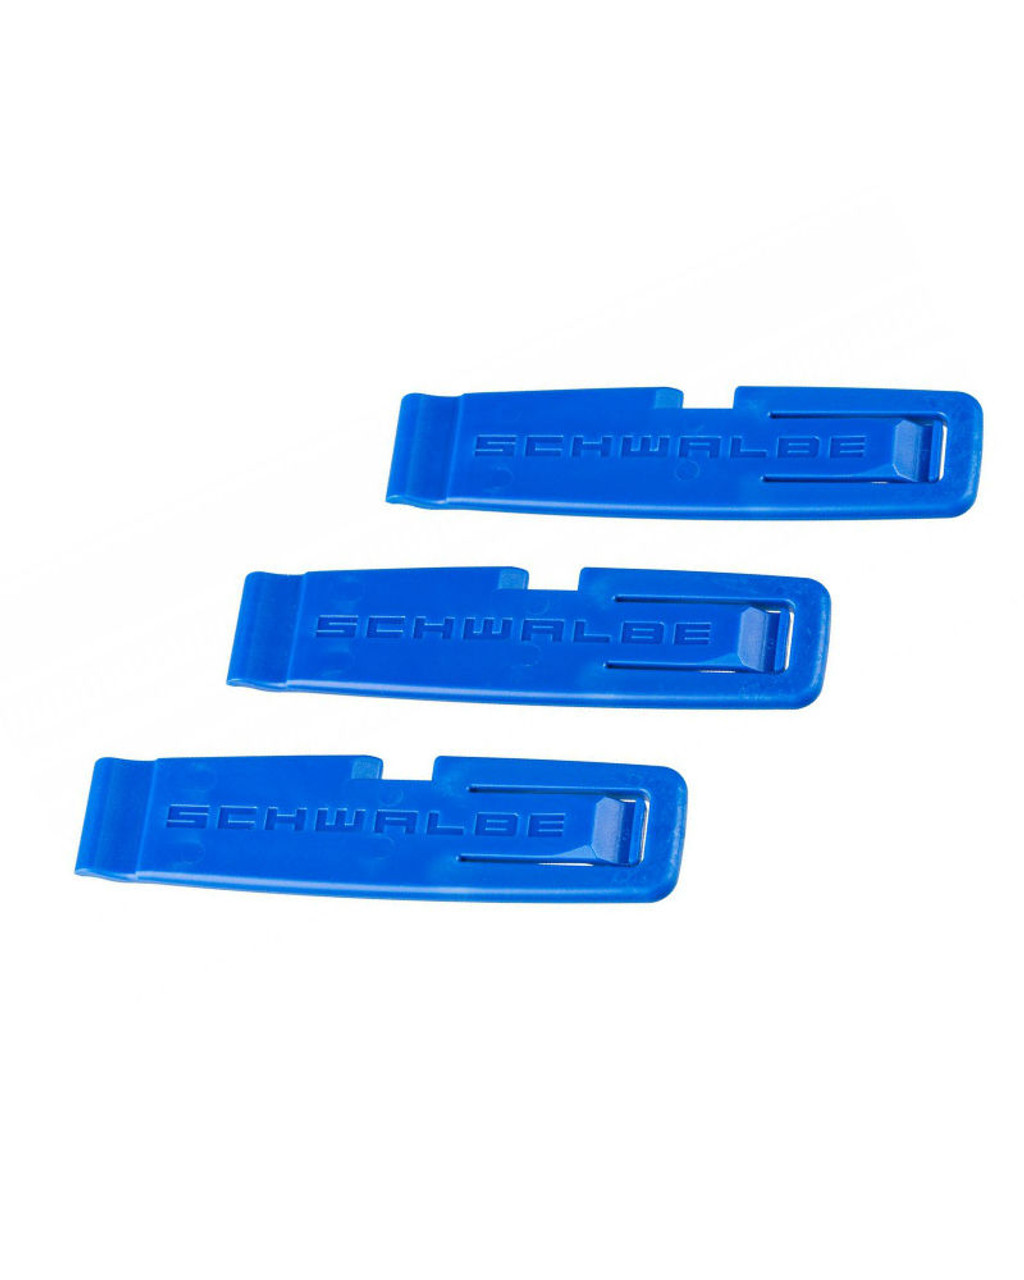 Park Tool TL-1 Tire Levers Set of 3 Tire Levers for Flat Repair Blue Lightweight